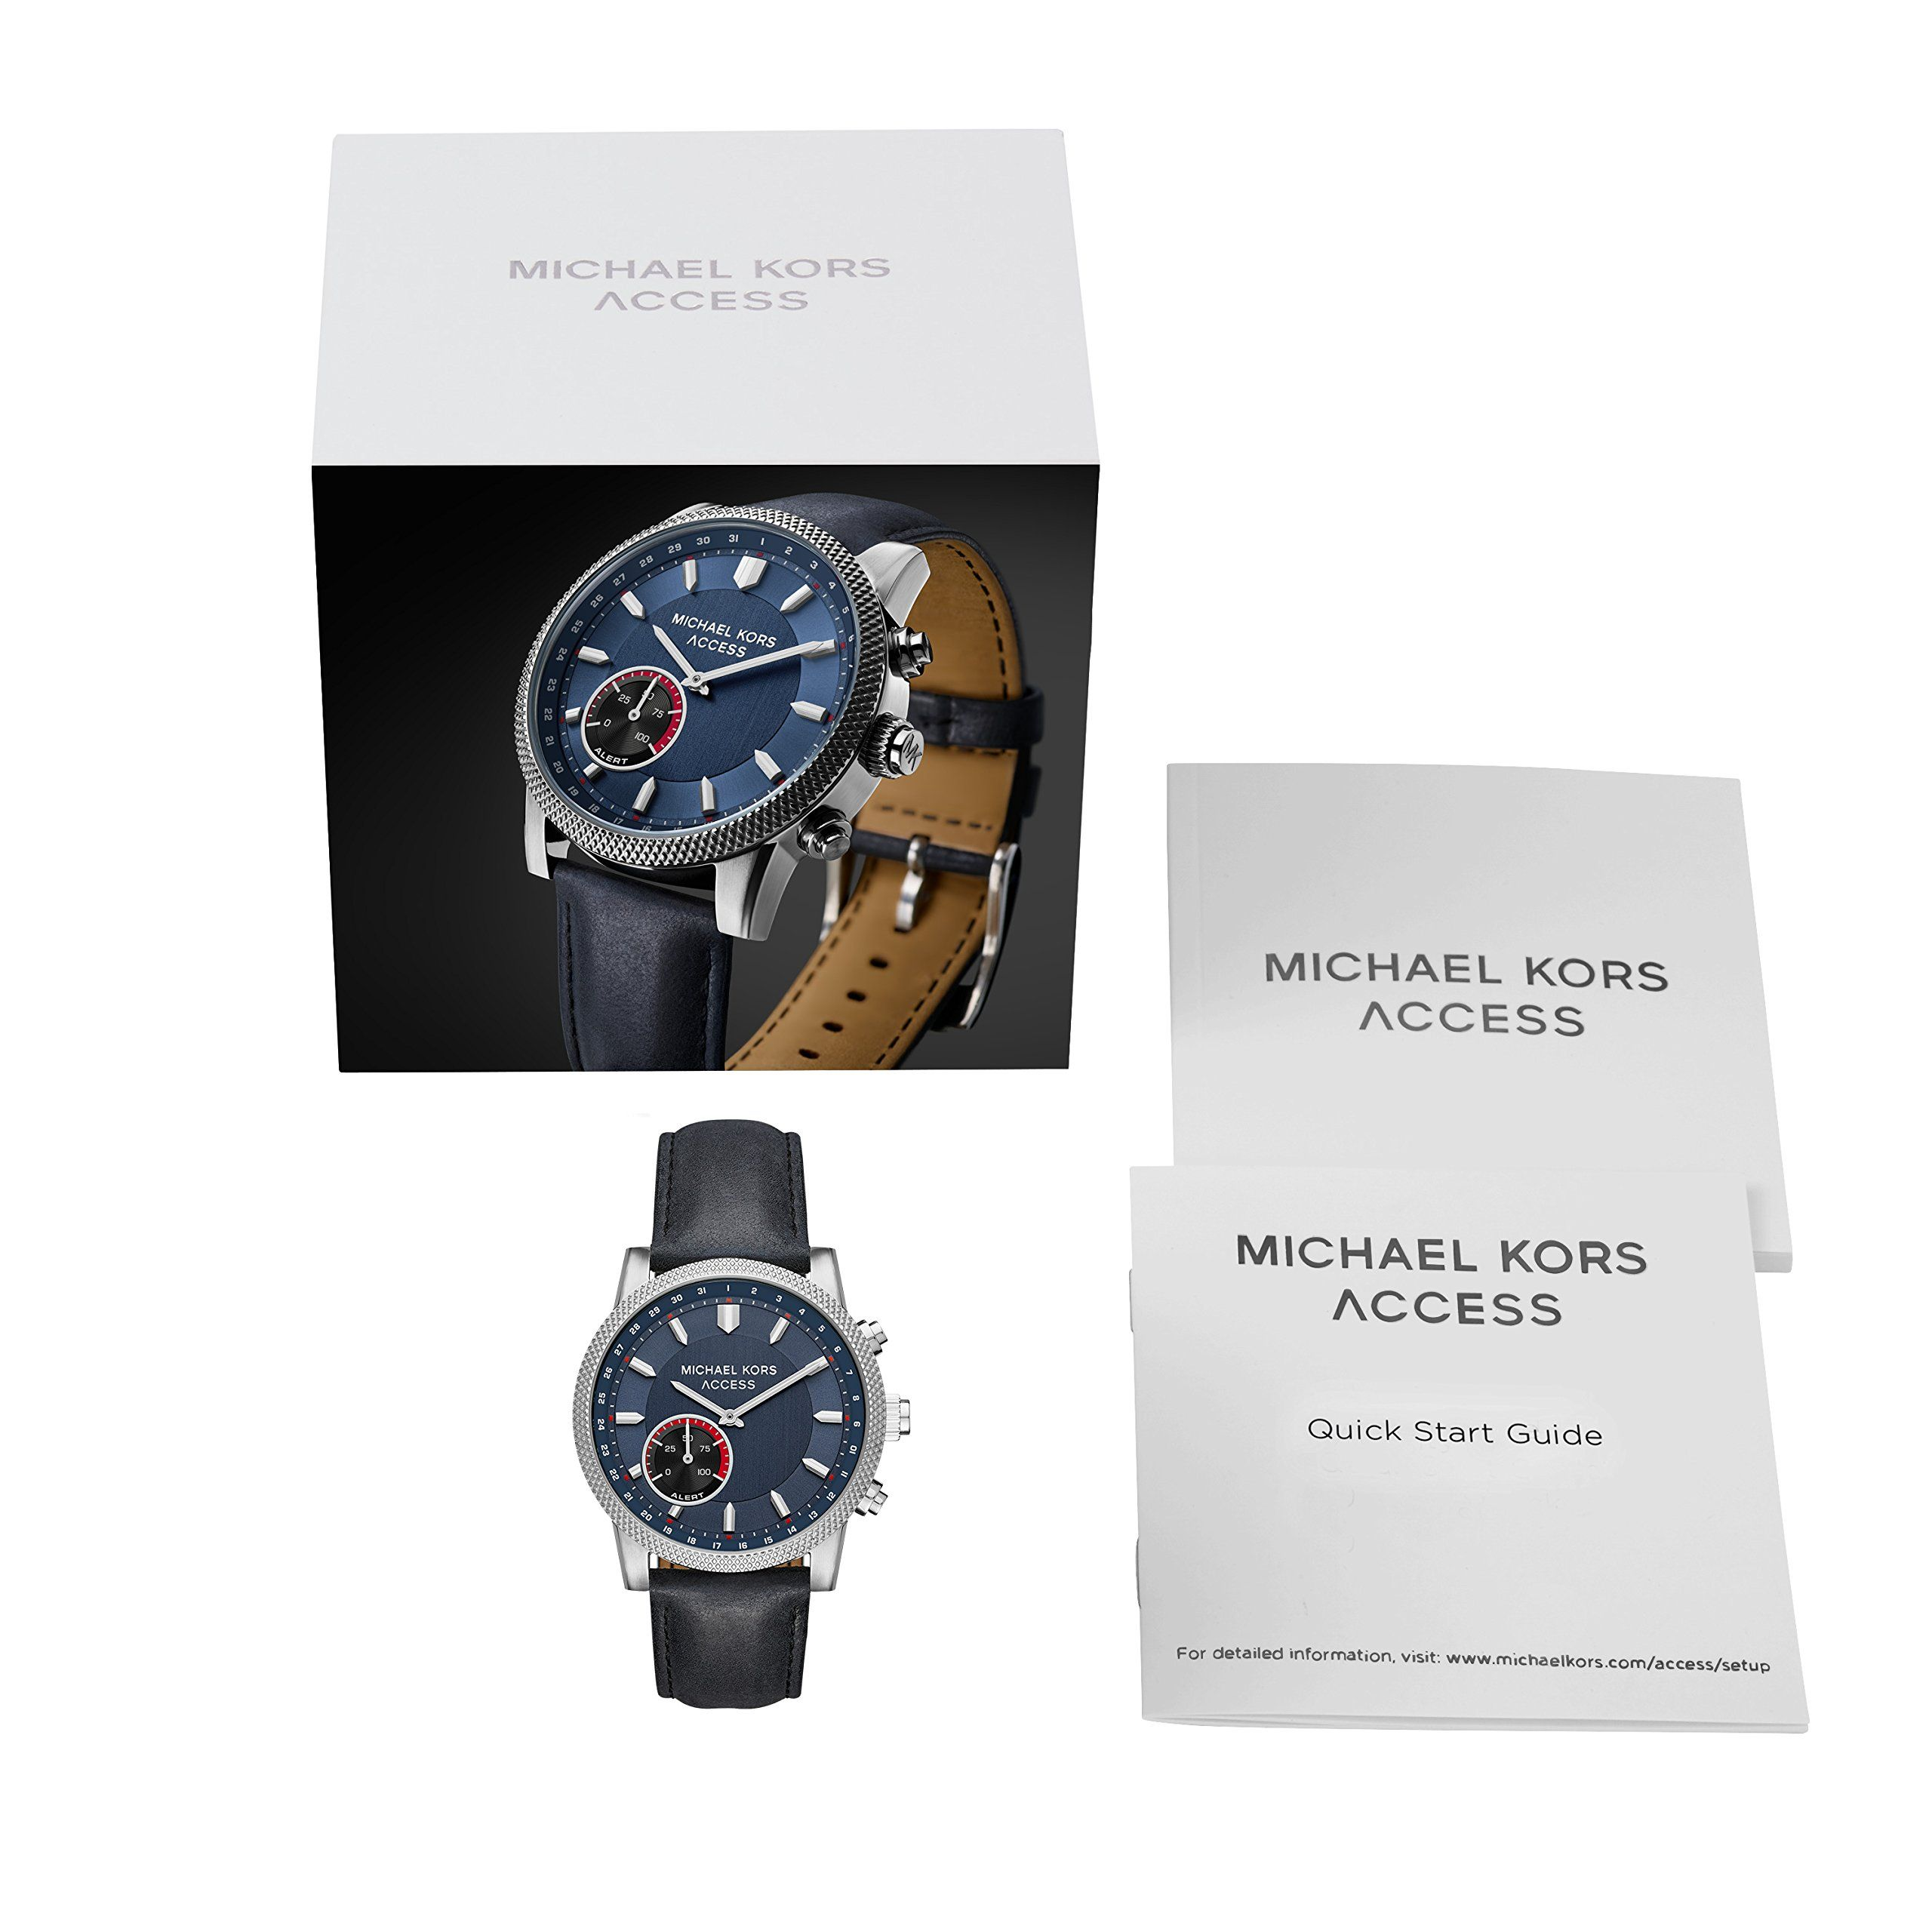 6b6483b9b068 Michael Kors Access Mens Hutton Hybrid Smartwatch Quartz Stainless Steel  and Leather Casual Watch Color Black